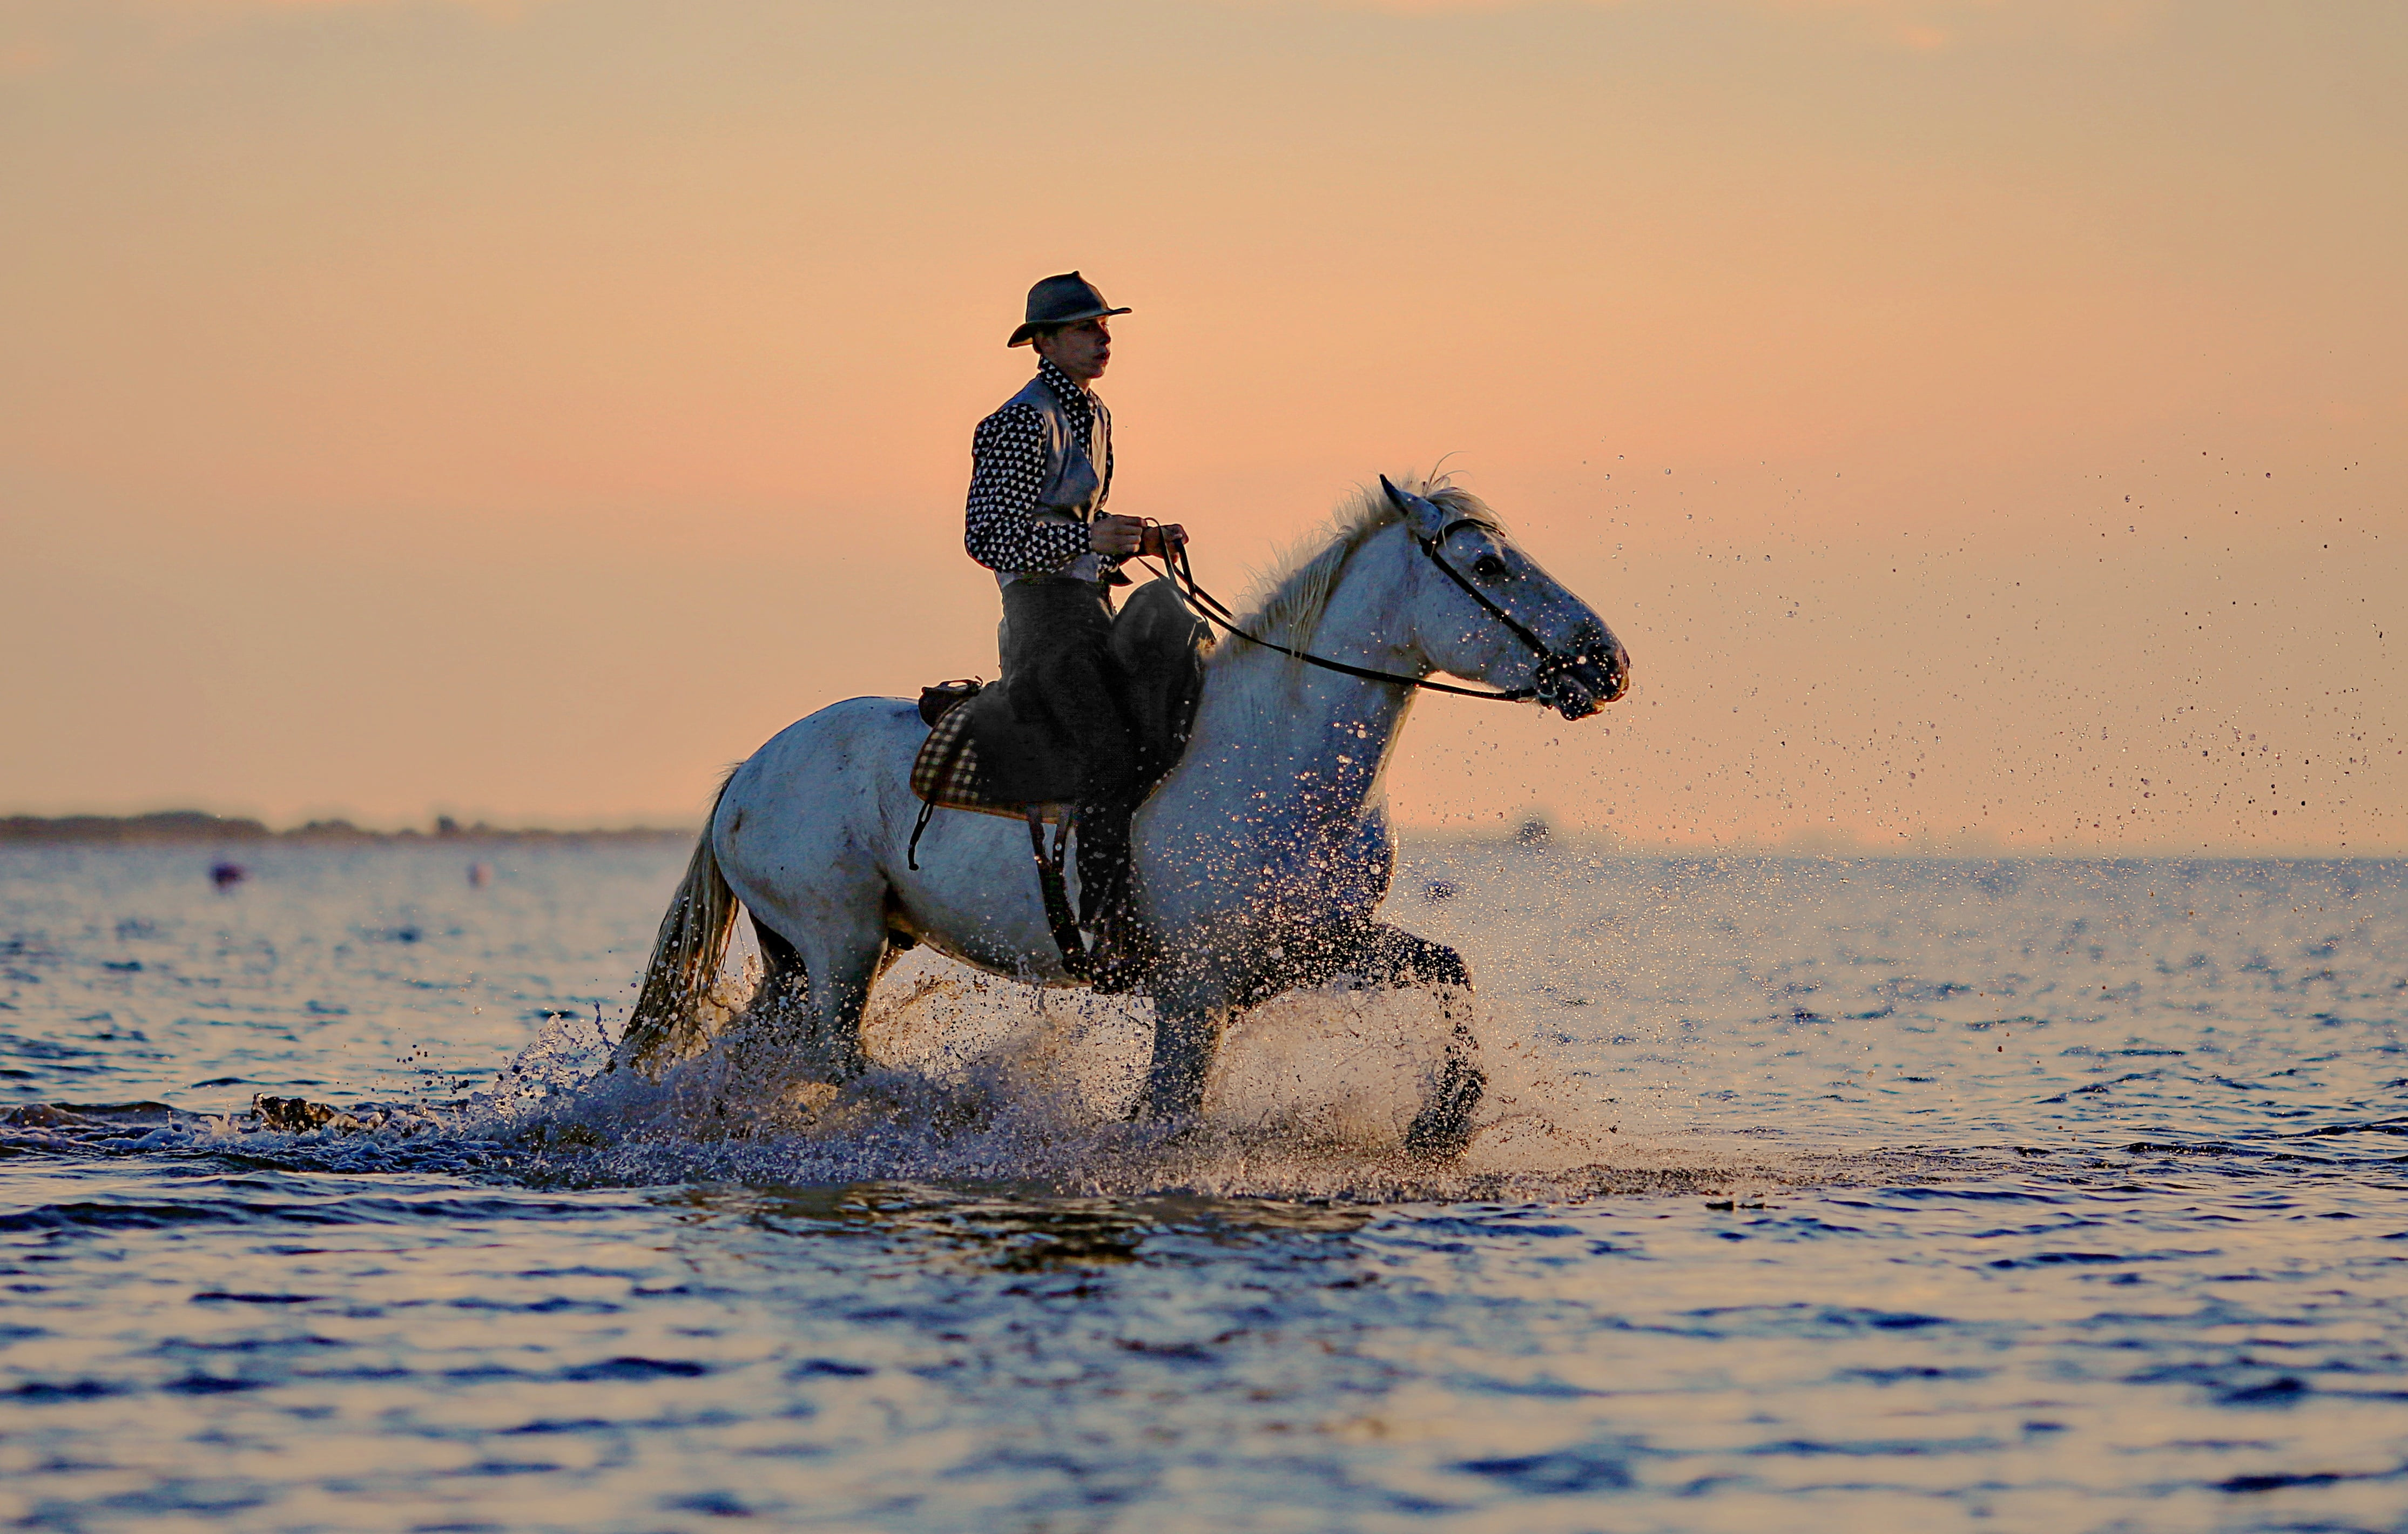 Man riding horse crossing the calm sea during daytime HD wallpaper 4459x2840